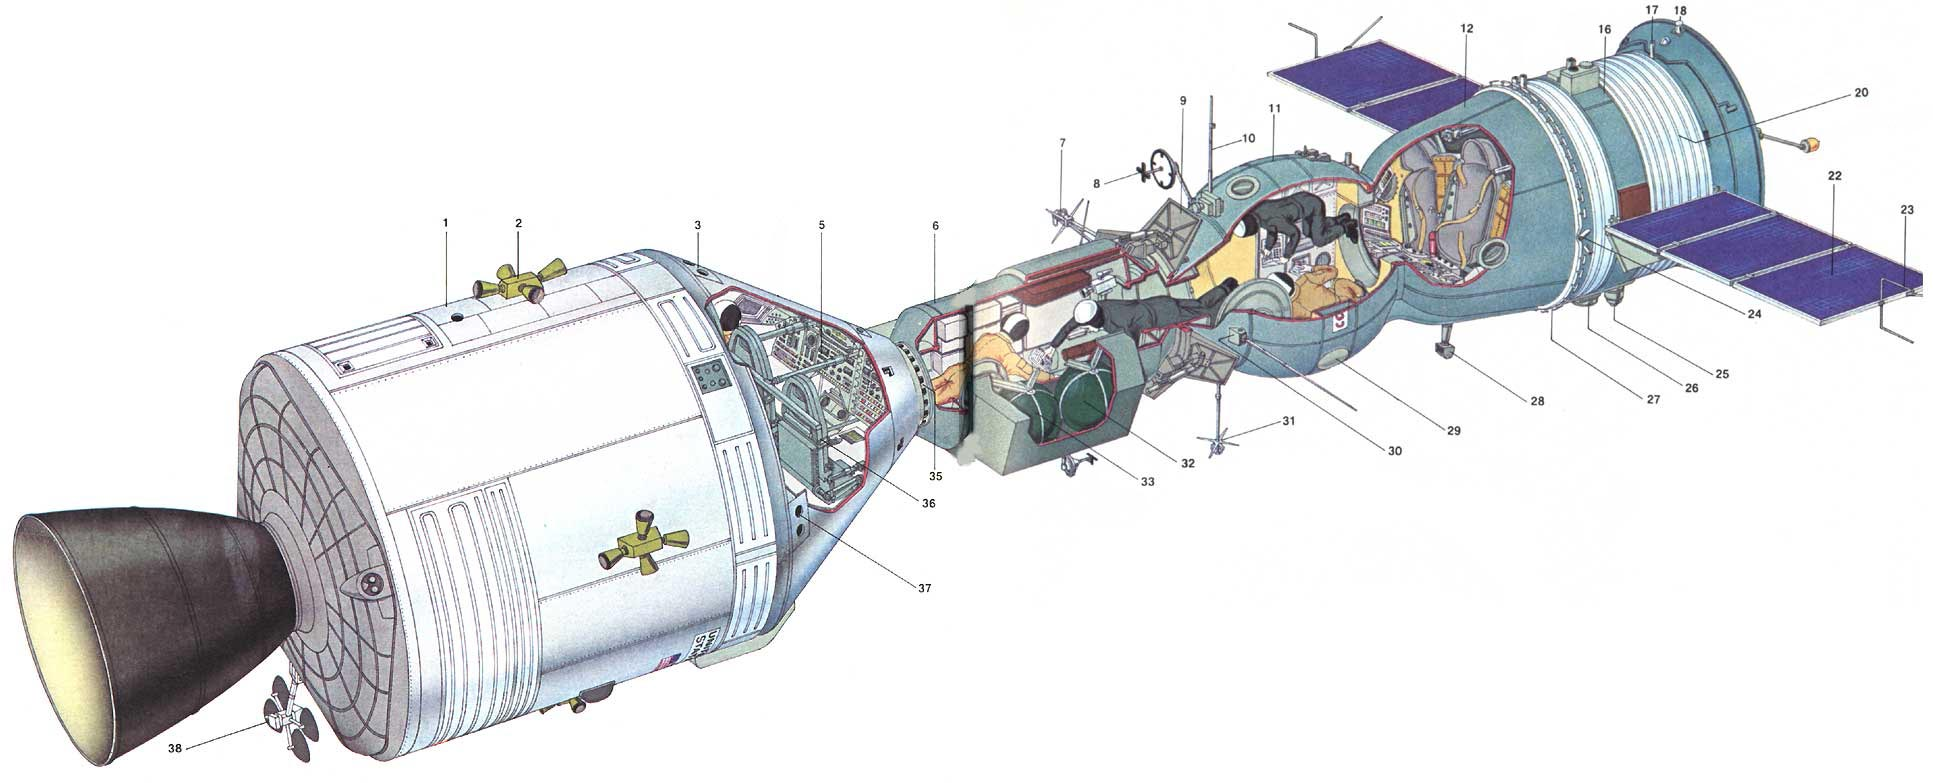 Apollo–Soyuz Test Project cutaway